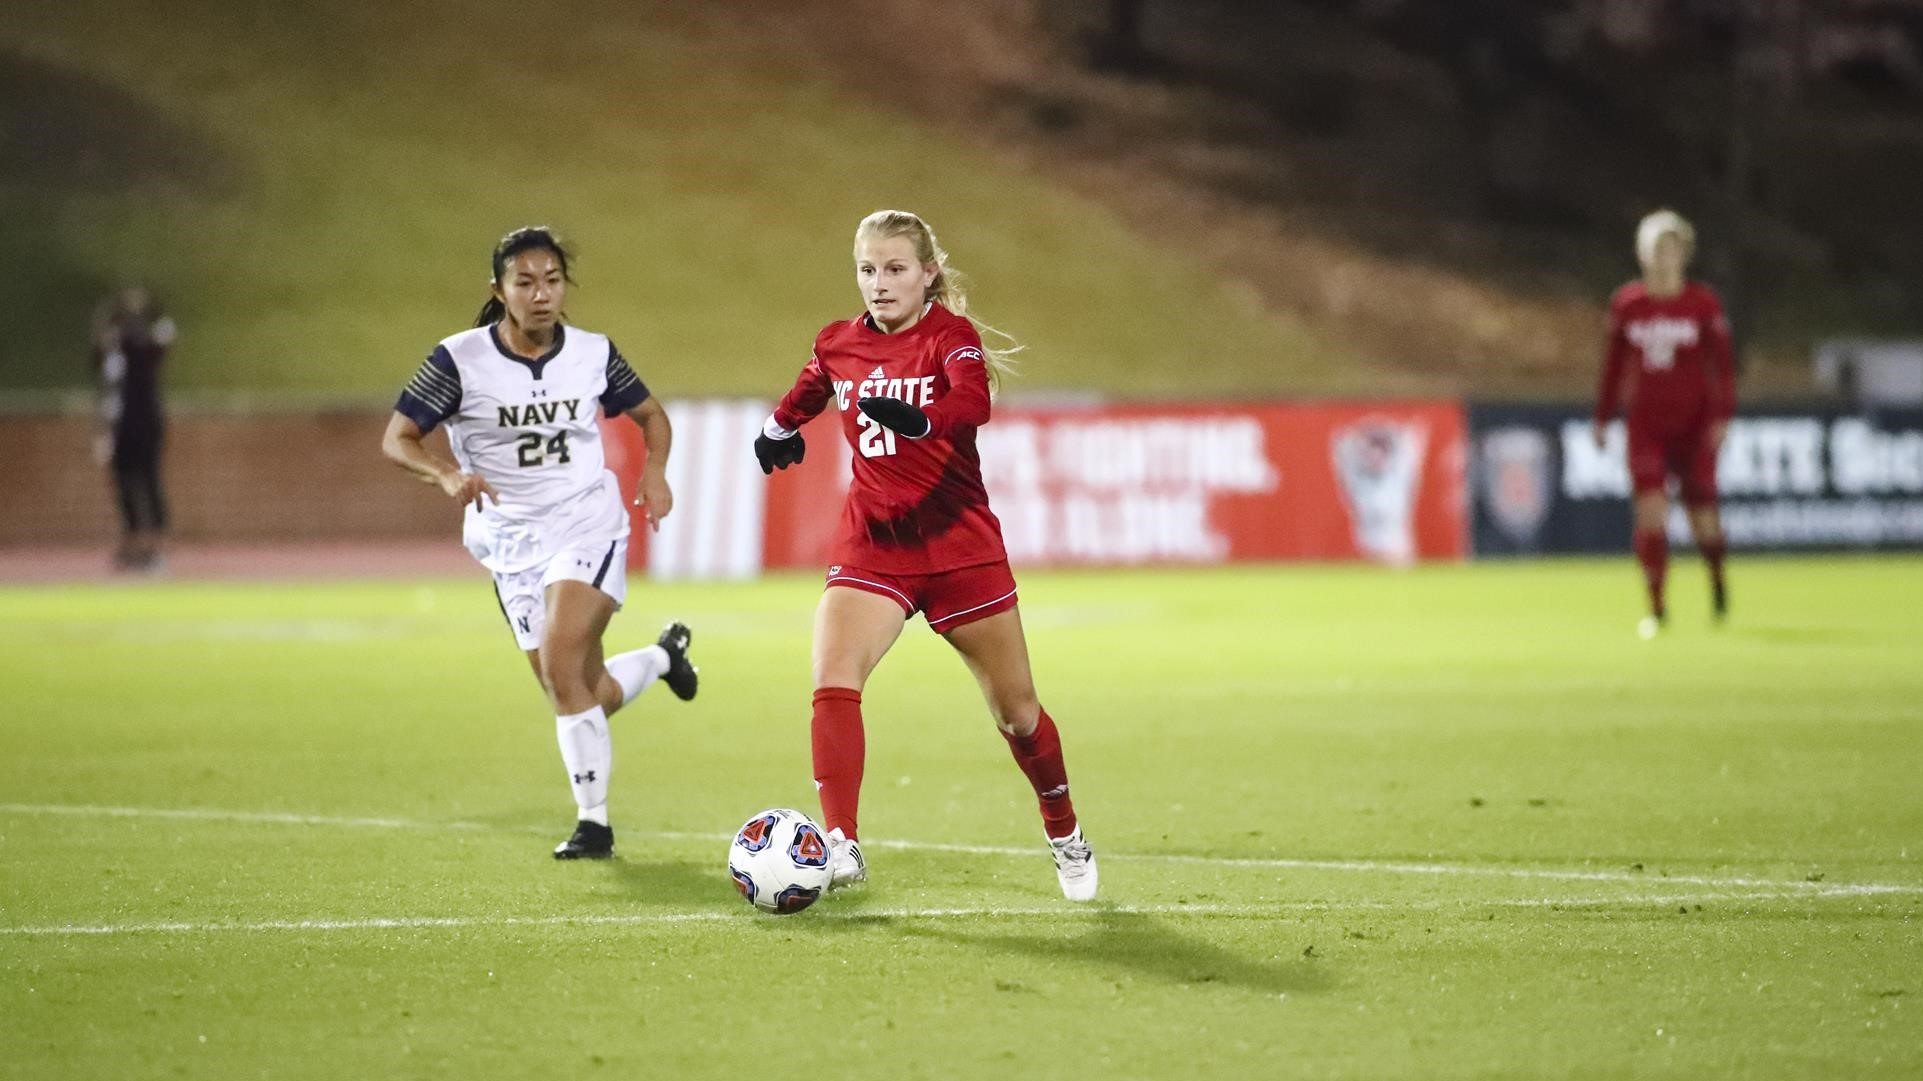 Wolfpack Sails Past Navy 3-0 In NCAA First Round